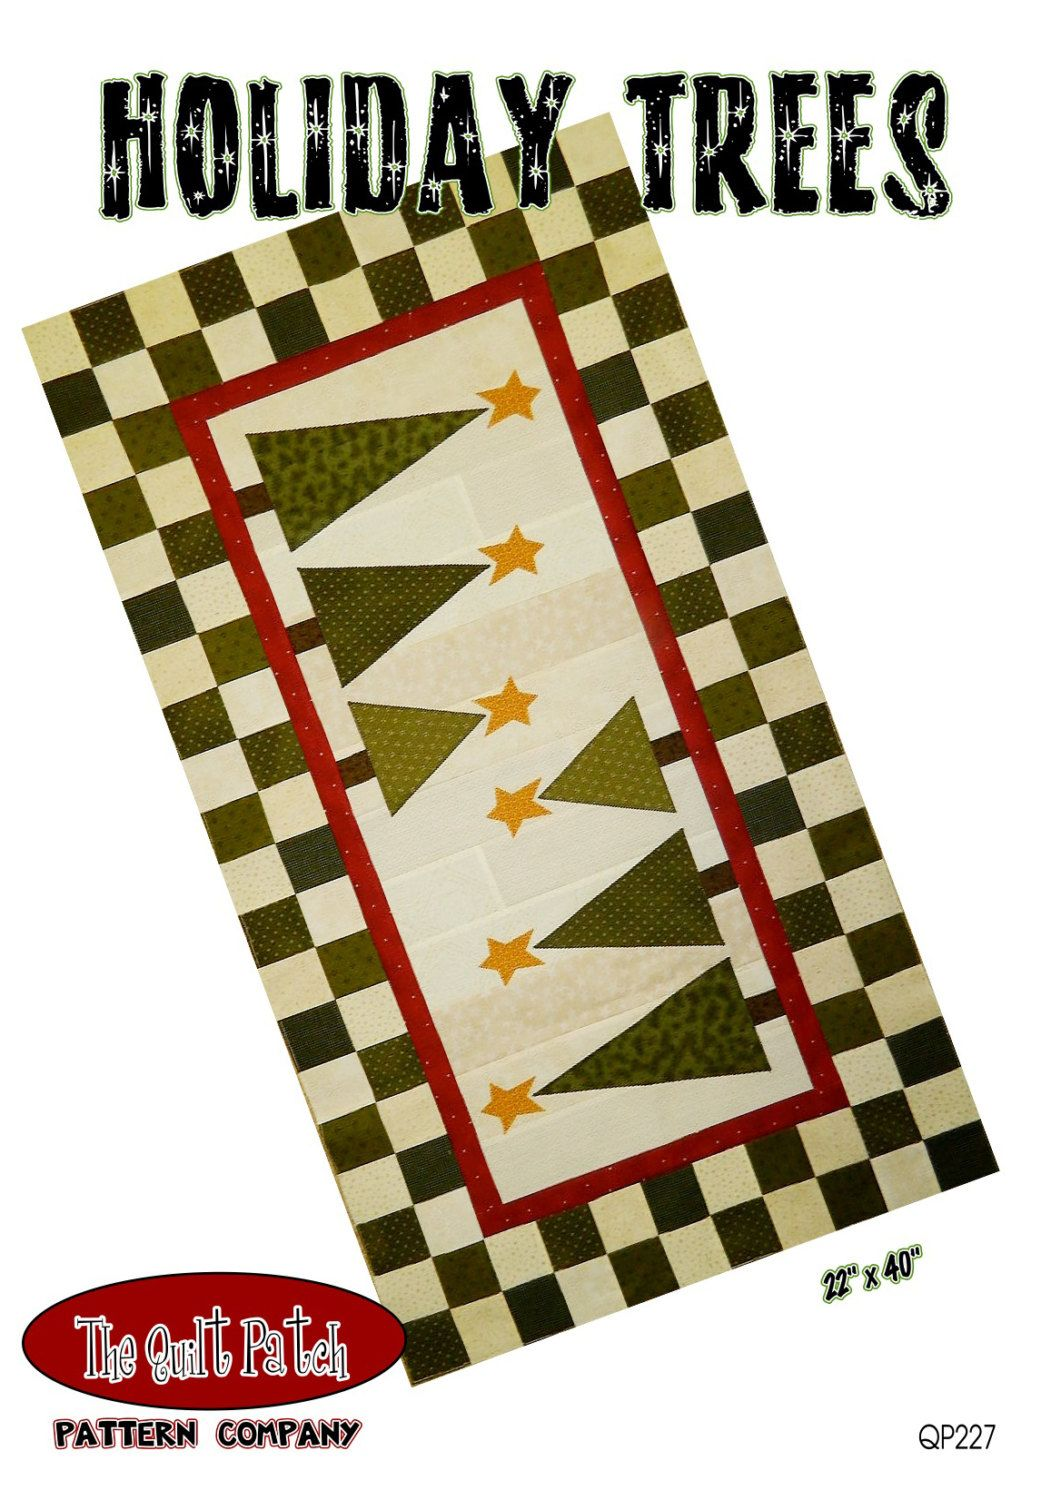 Christmas Tree Table Runner Pattern, Holiday Trees QP229 Quilt Patch, Quilted Table Runner, Applique Table Runner, Christmas Table Runner by AnnadaisysFabrics on Etsy https://www.etsy.com/listing/211023551/christmas-tree-table-runner-pattern